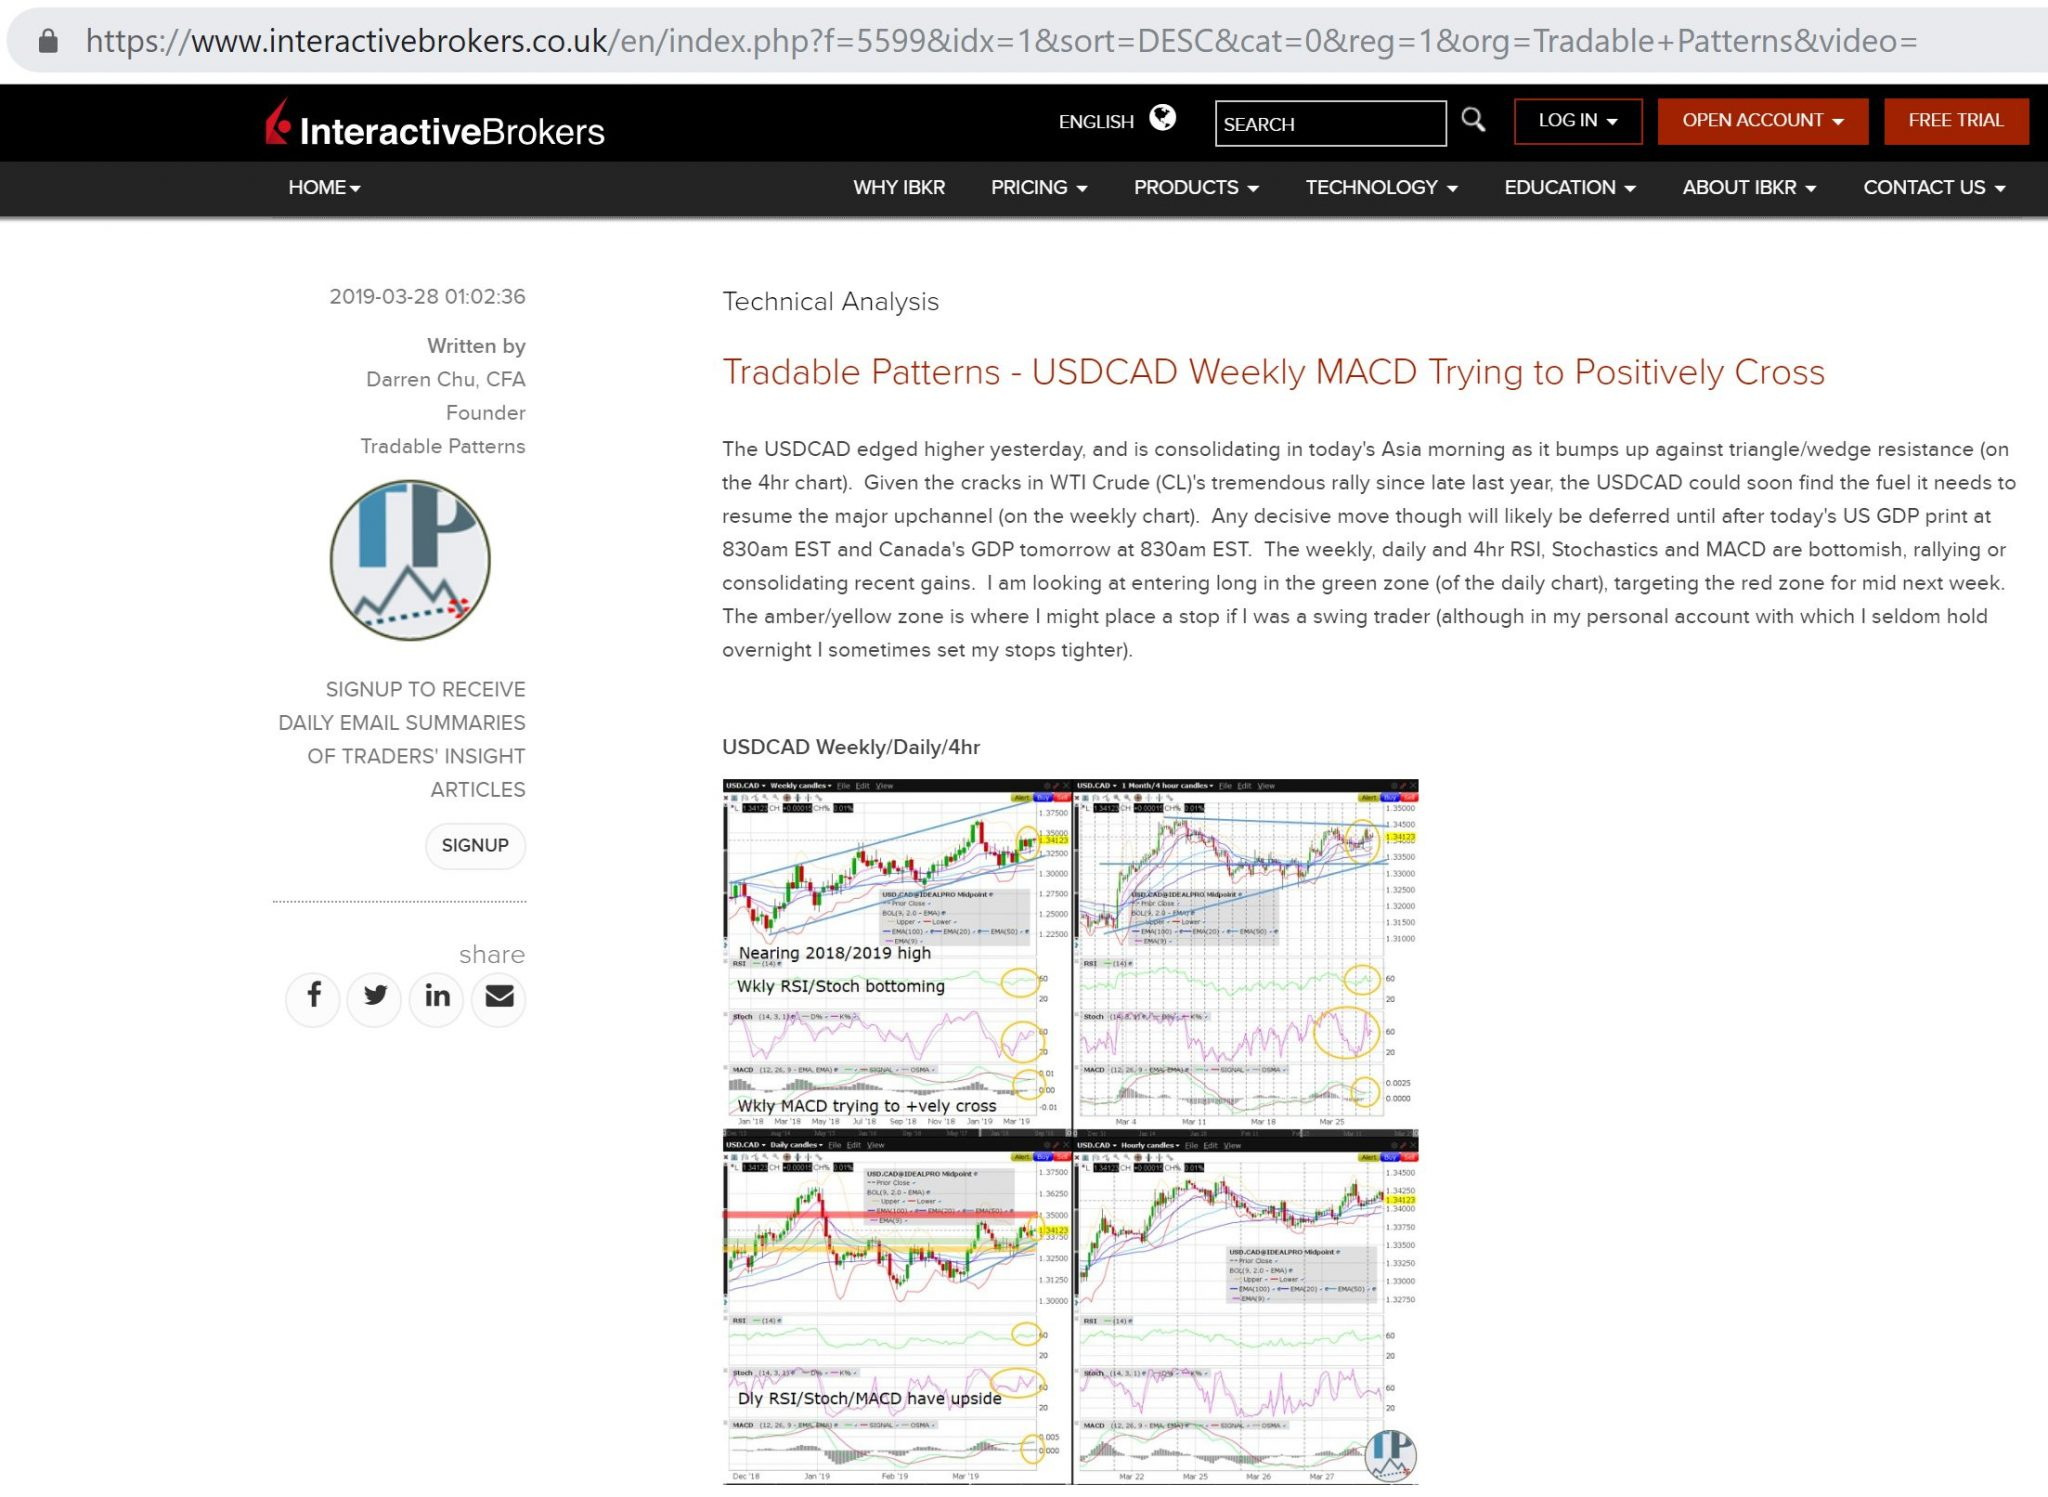 Click on headlines of articles contributed by Tradable Patterns to open up article content within IB Traders' Insight